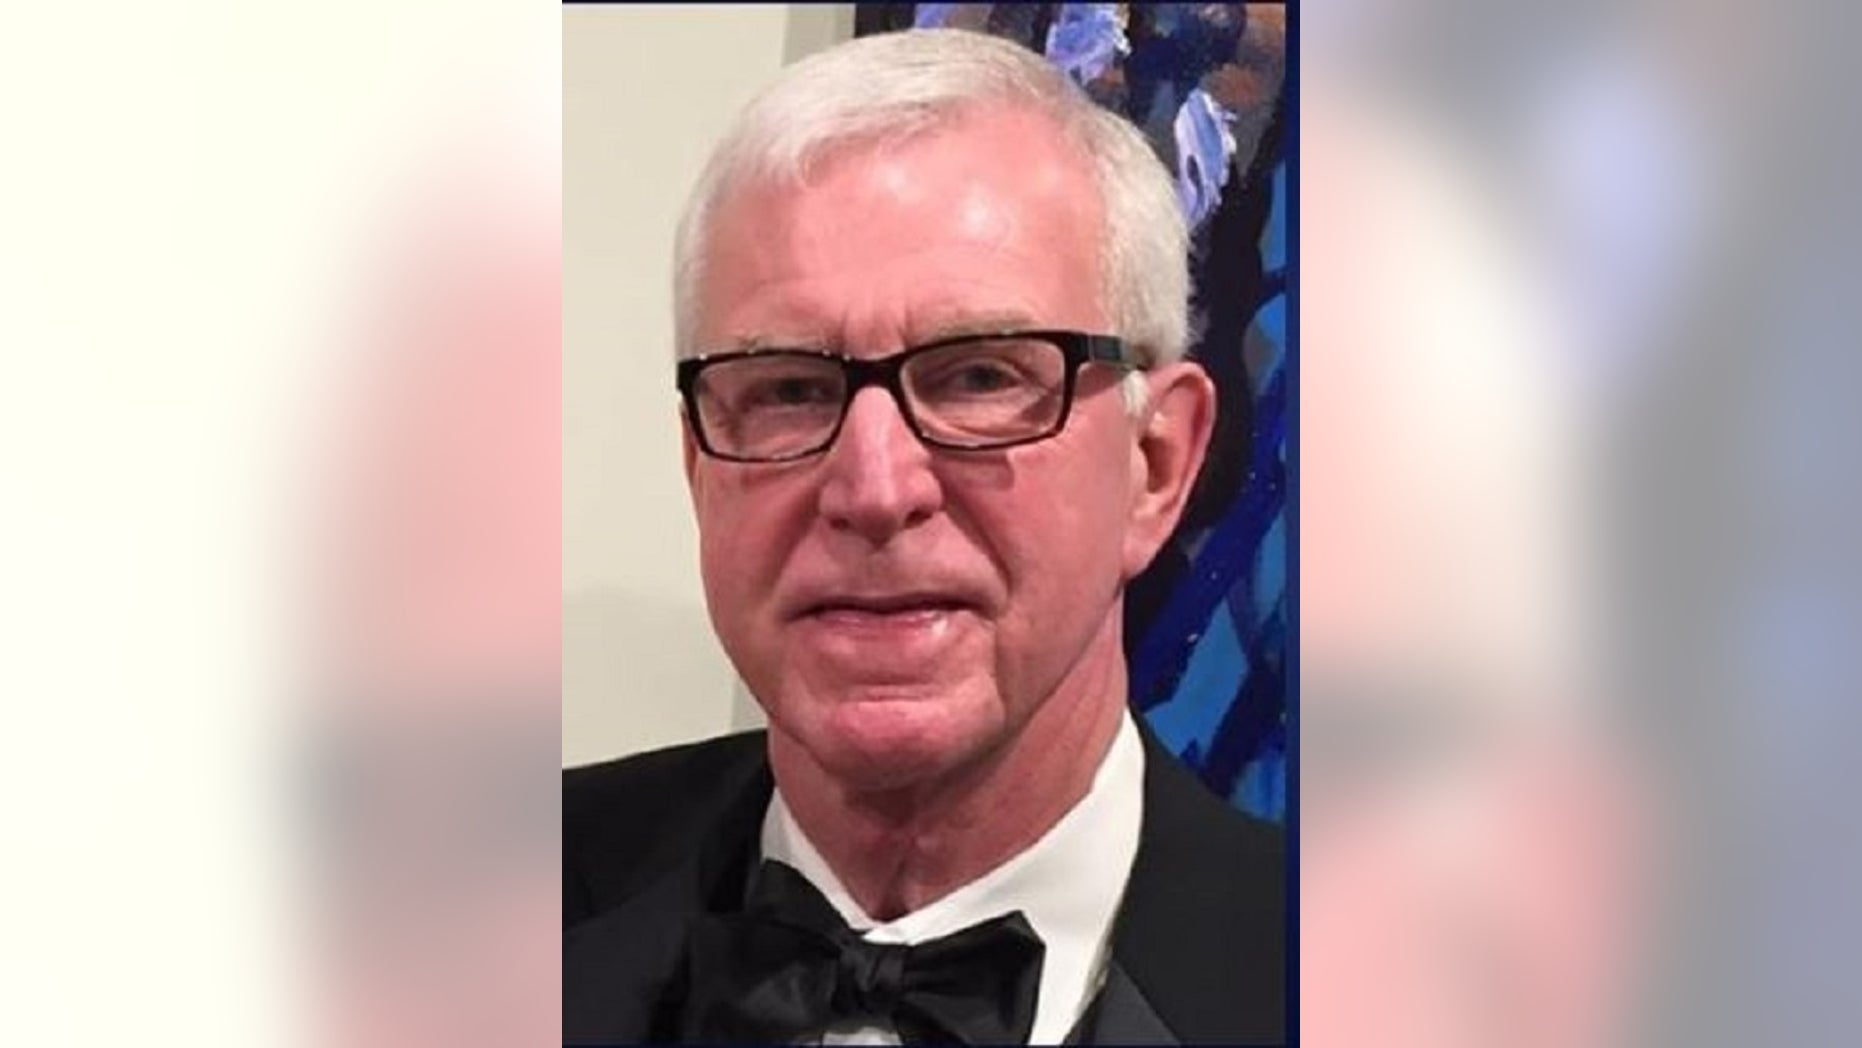 Jack Hough, 73, an Air Force veteran, was killed in an apparent carjacking attempt, authorities say. (Facebook)